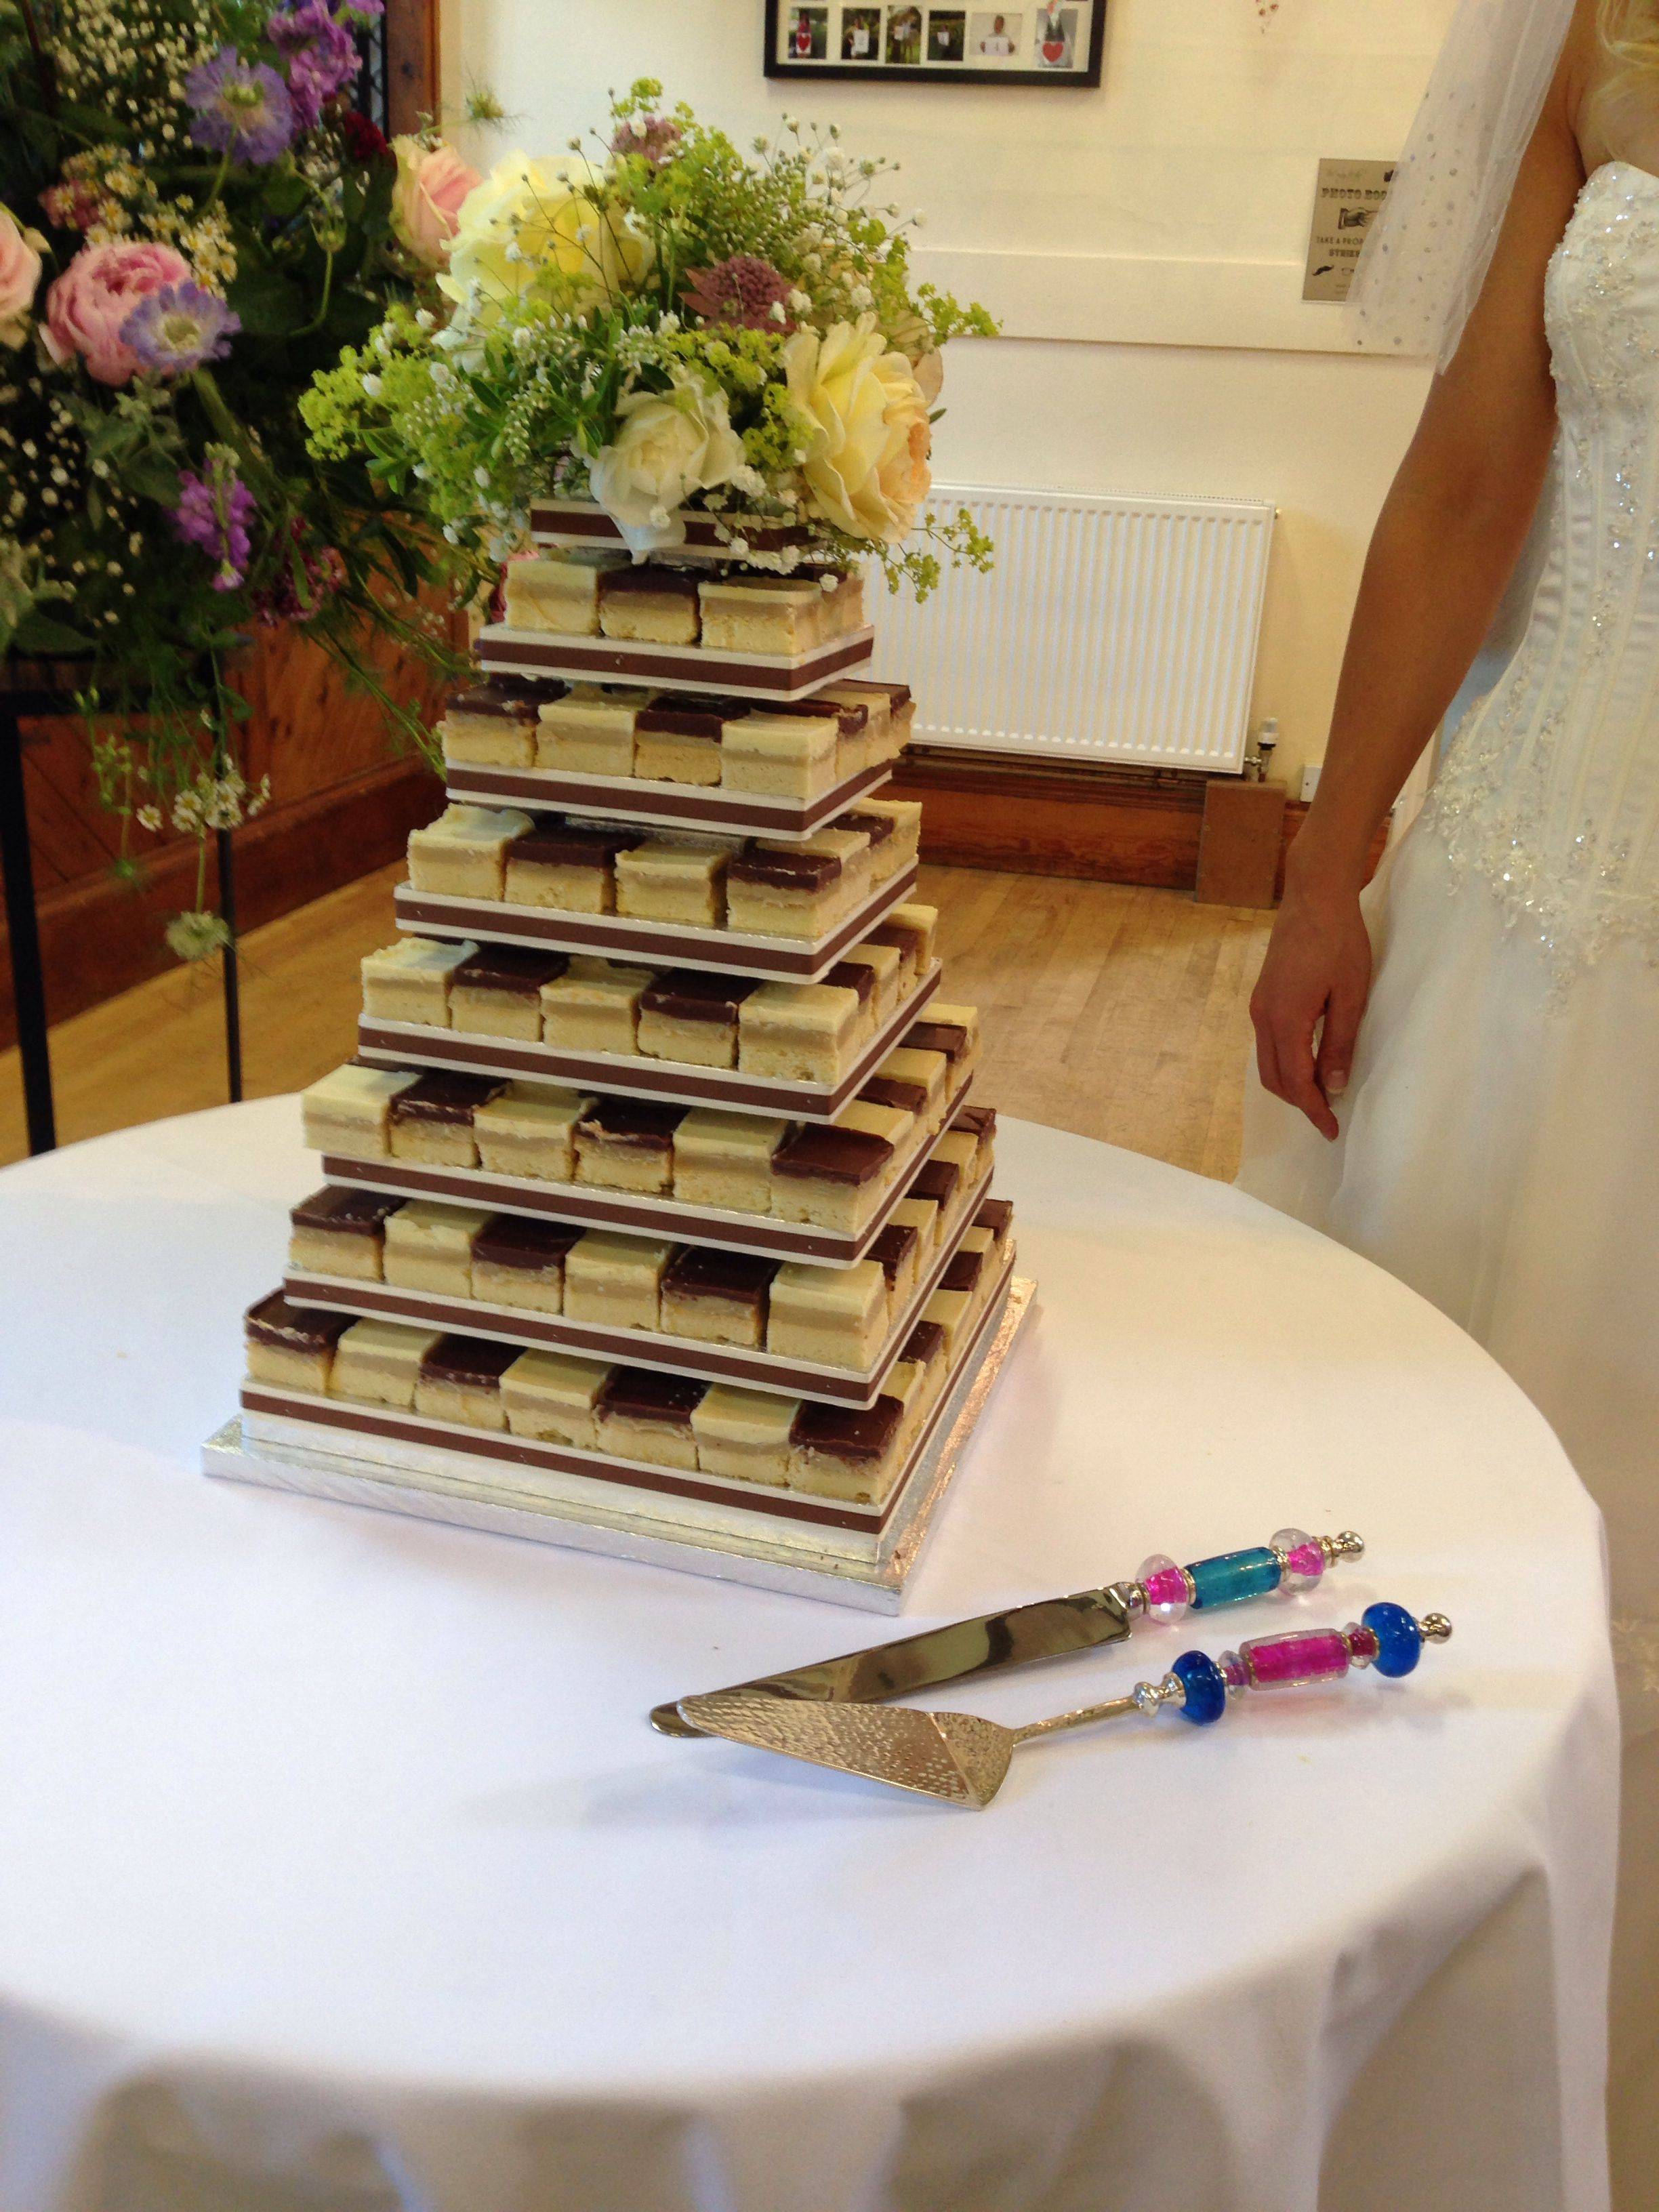 Millionaires Shortbread Wedding Cake Served With Beaded Cake